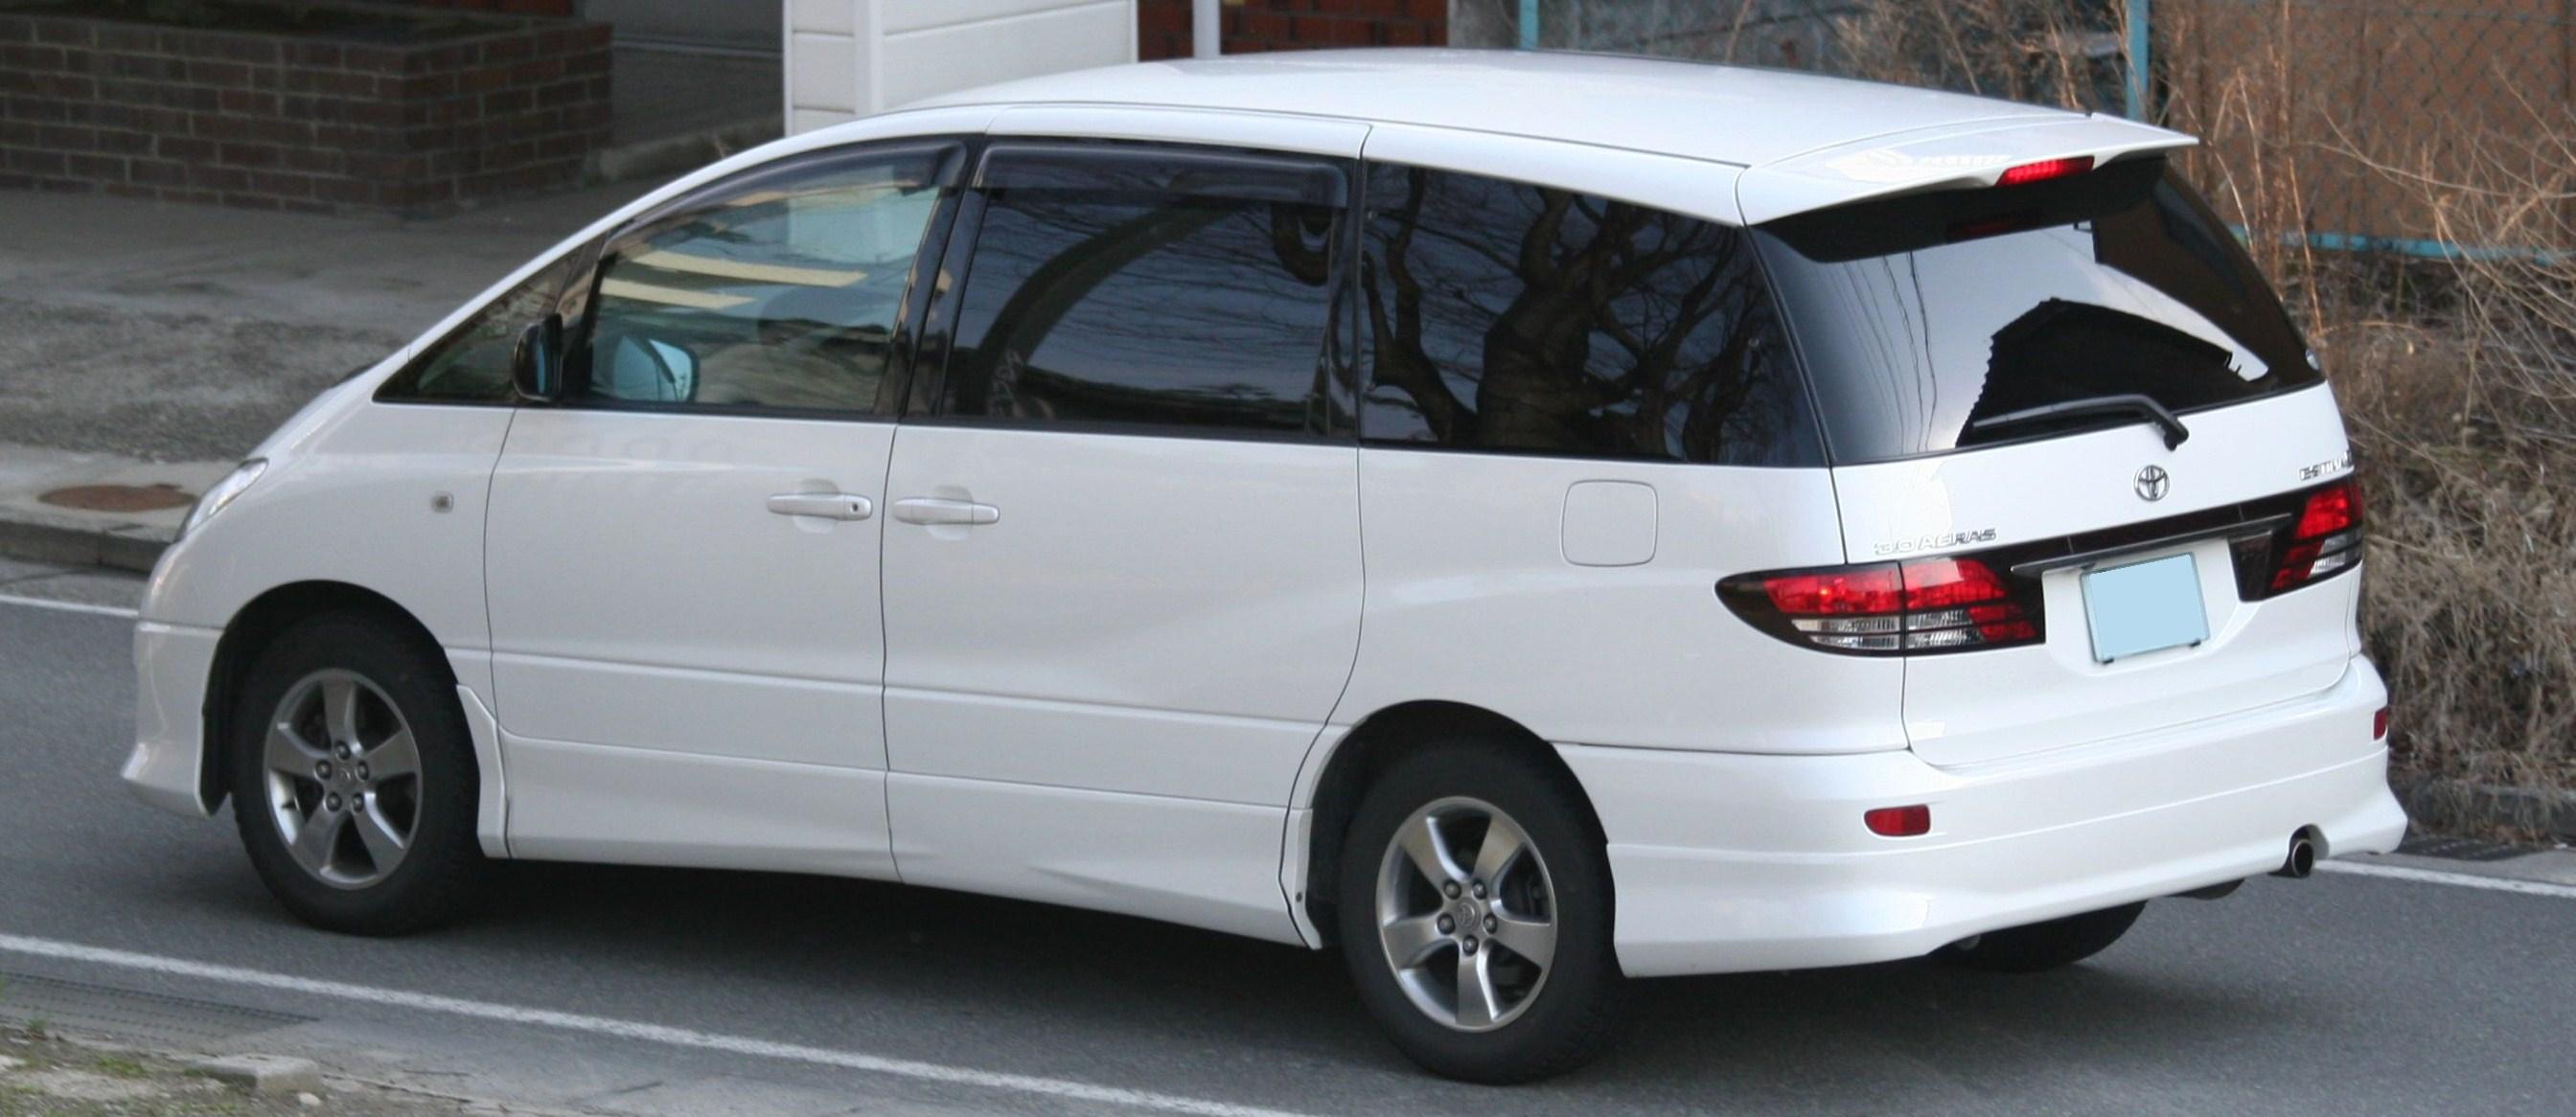 Toyota Estima 2009 photo - 1